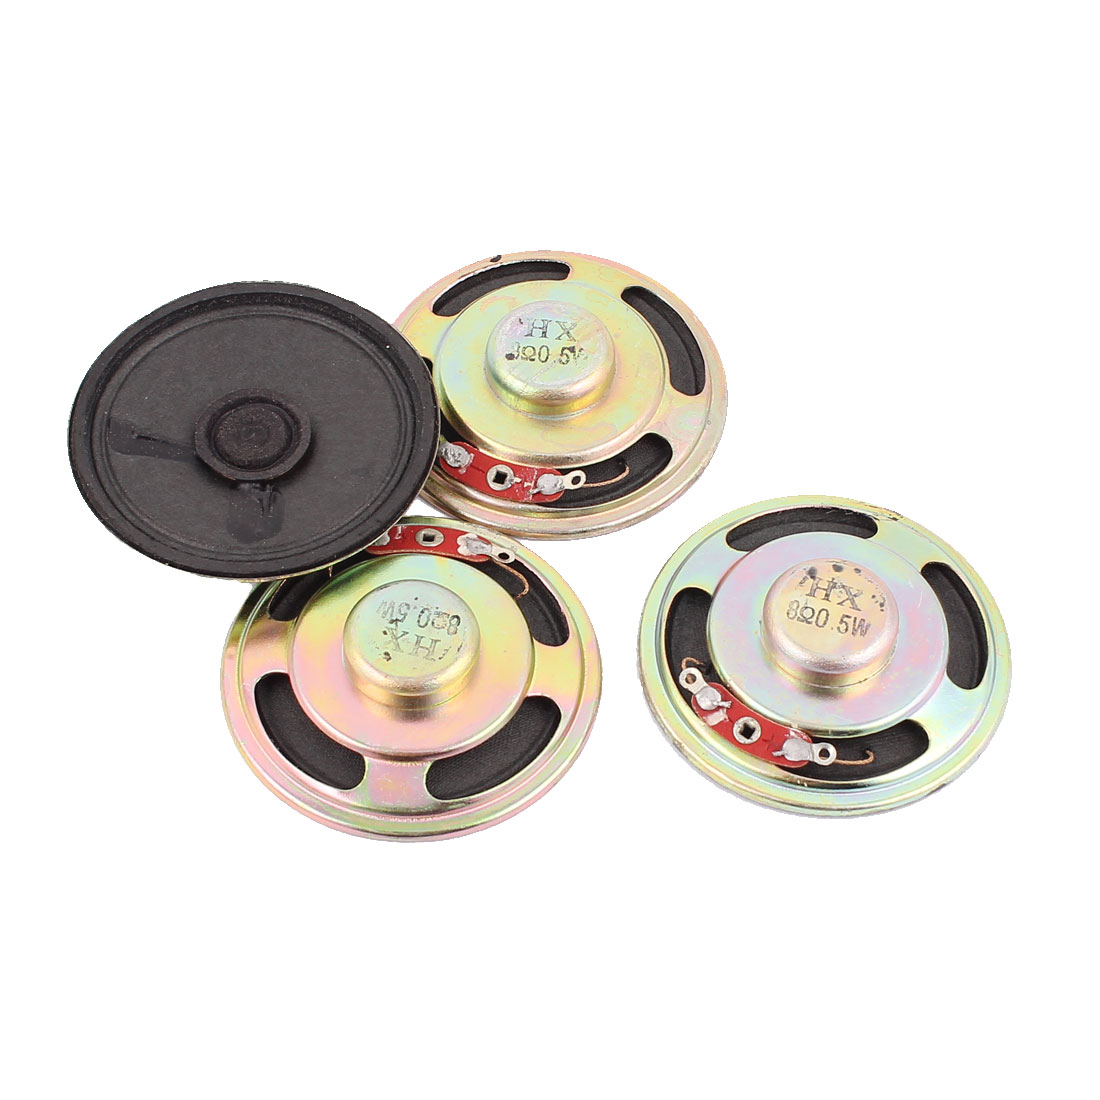 0.5W 8 Ohm 50mm Diameter Internal Magnet Speaker Loudspeaker 4Pcs